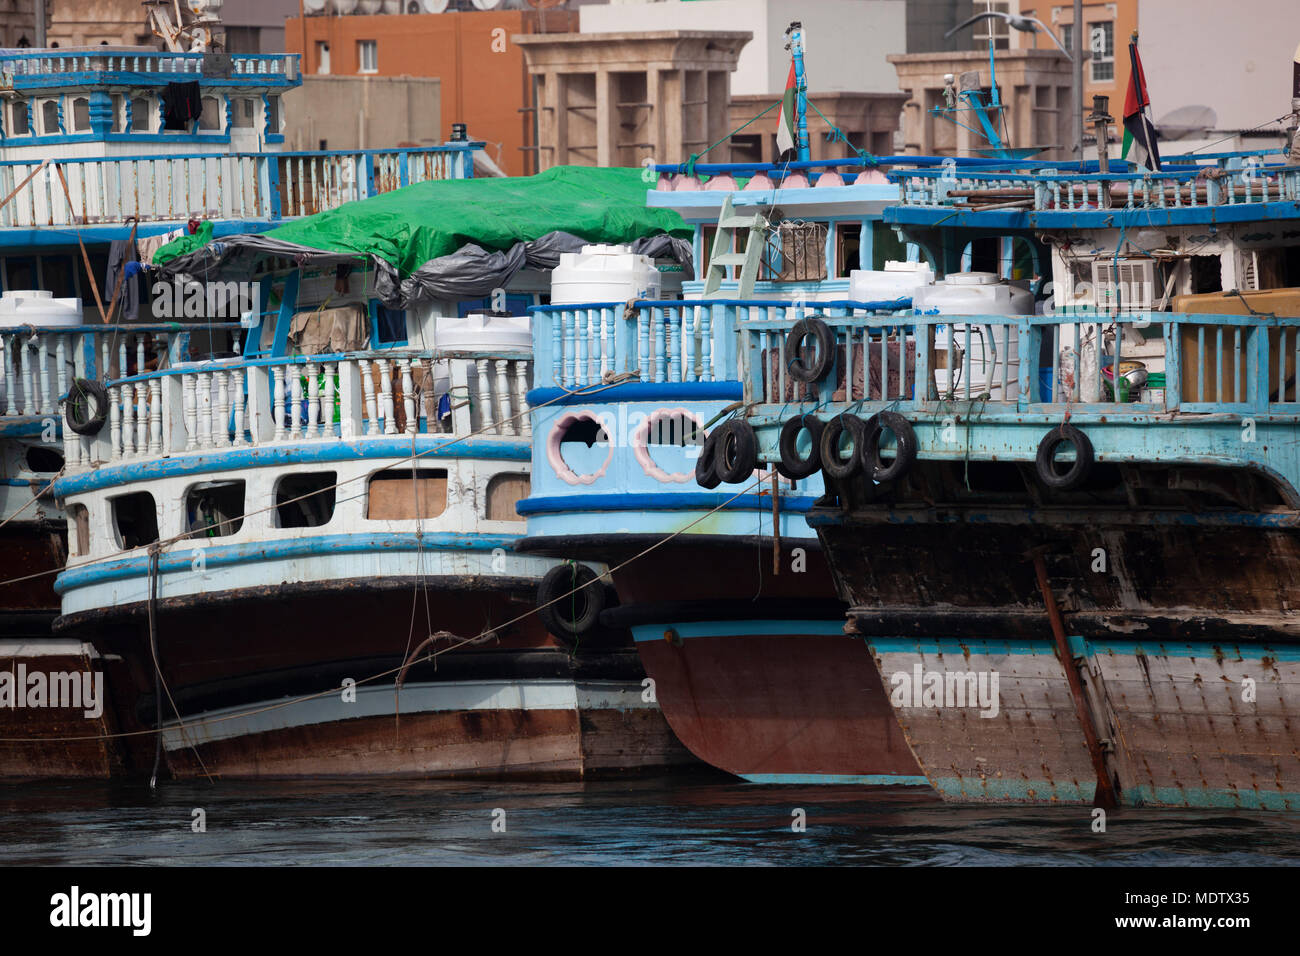 Blue sterns of dhows mooored along the Dubai Creek, Deira, Dubai, United Arab Emirates, Middle East - Stock Image